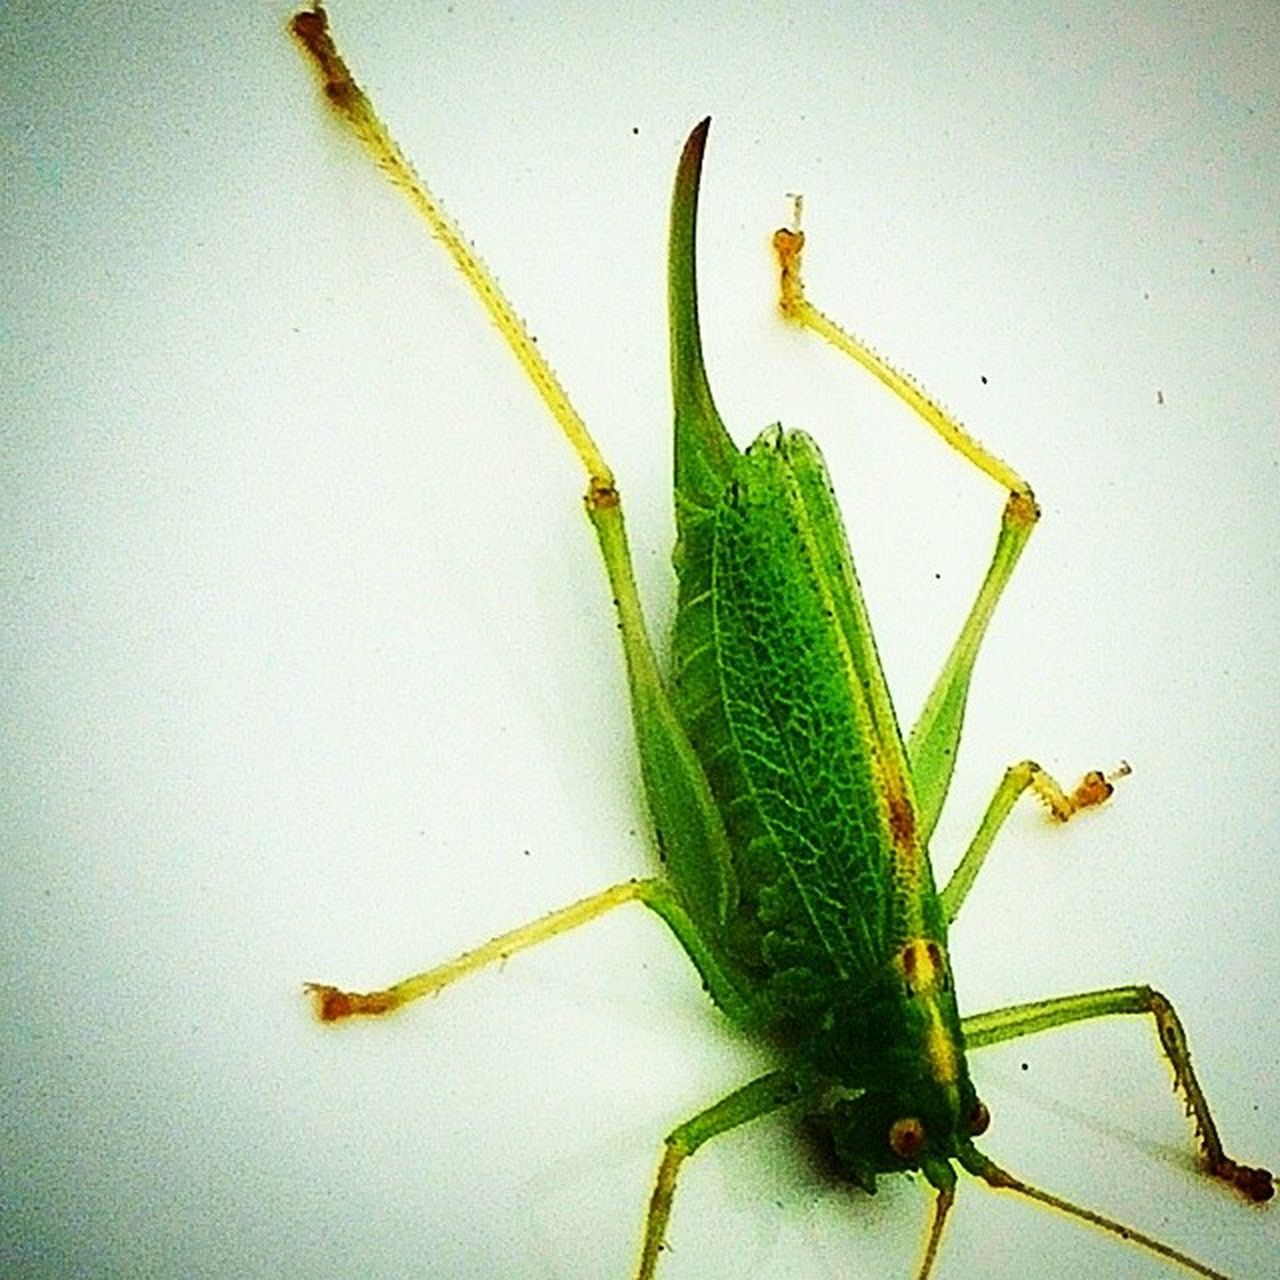 Found this guy on my car Green Bug Greenbug Alienbug Wtfisthis